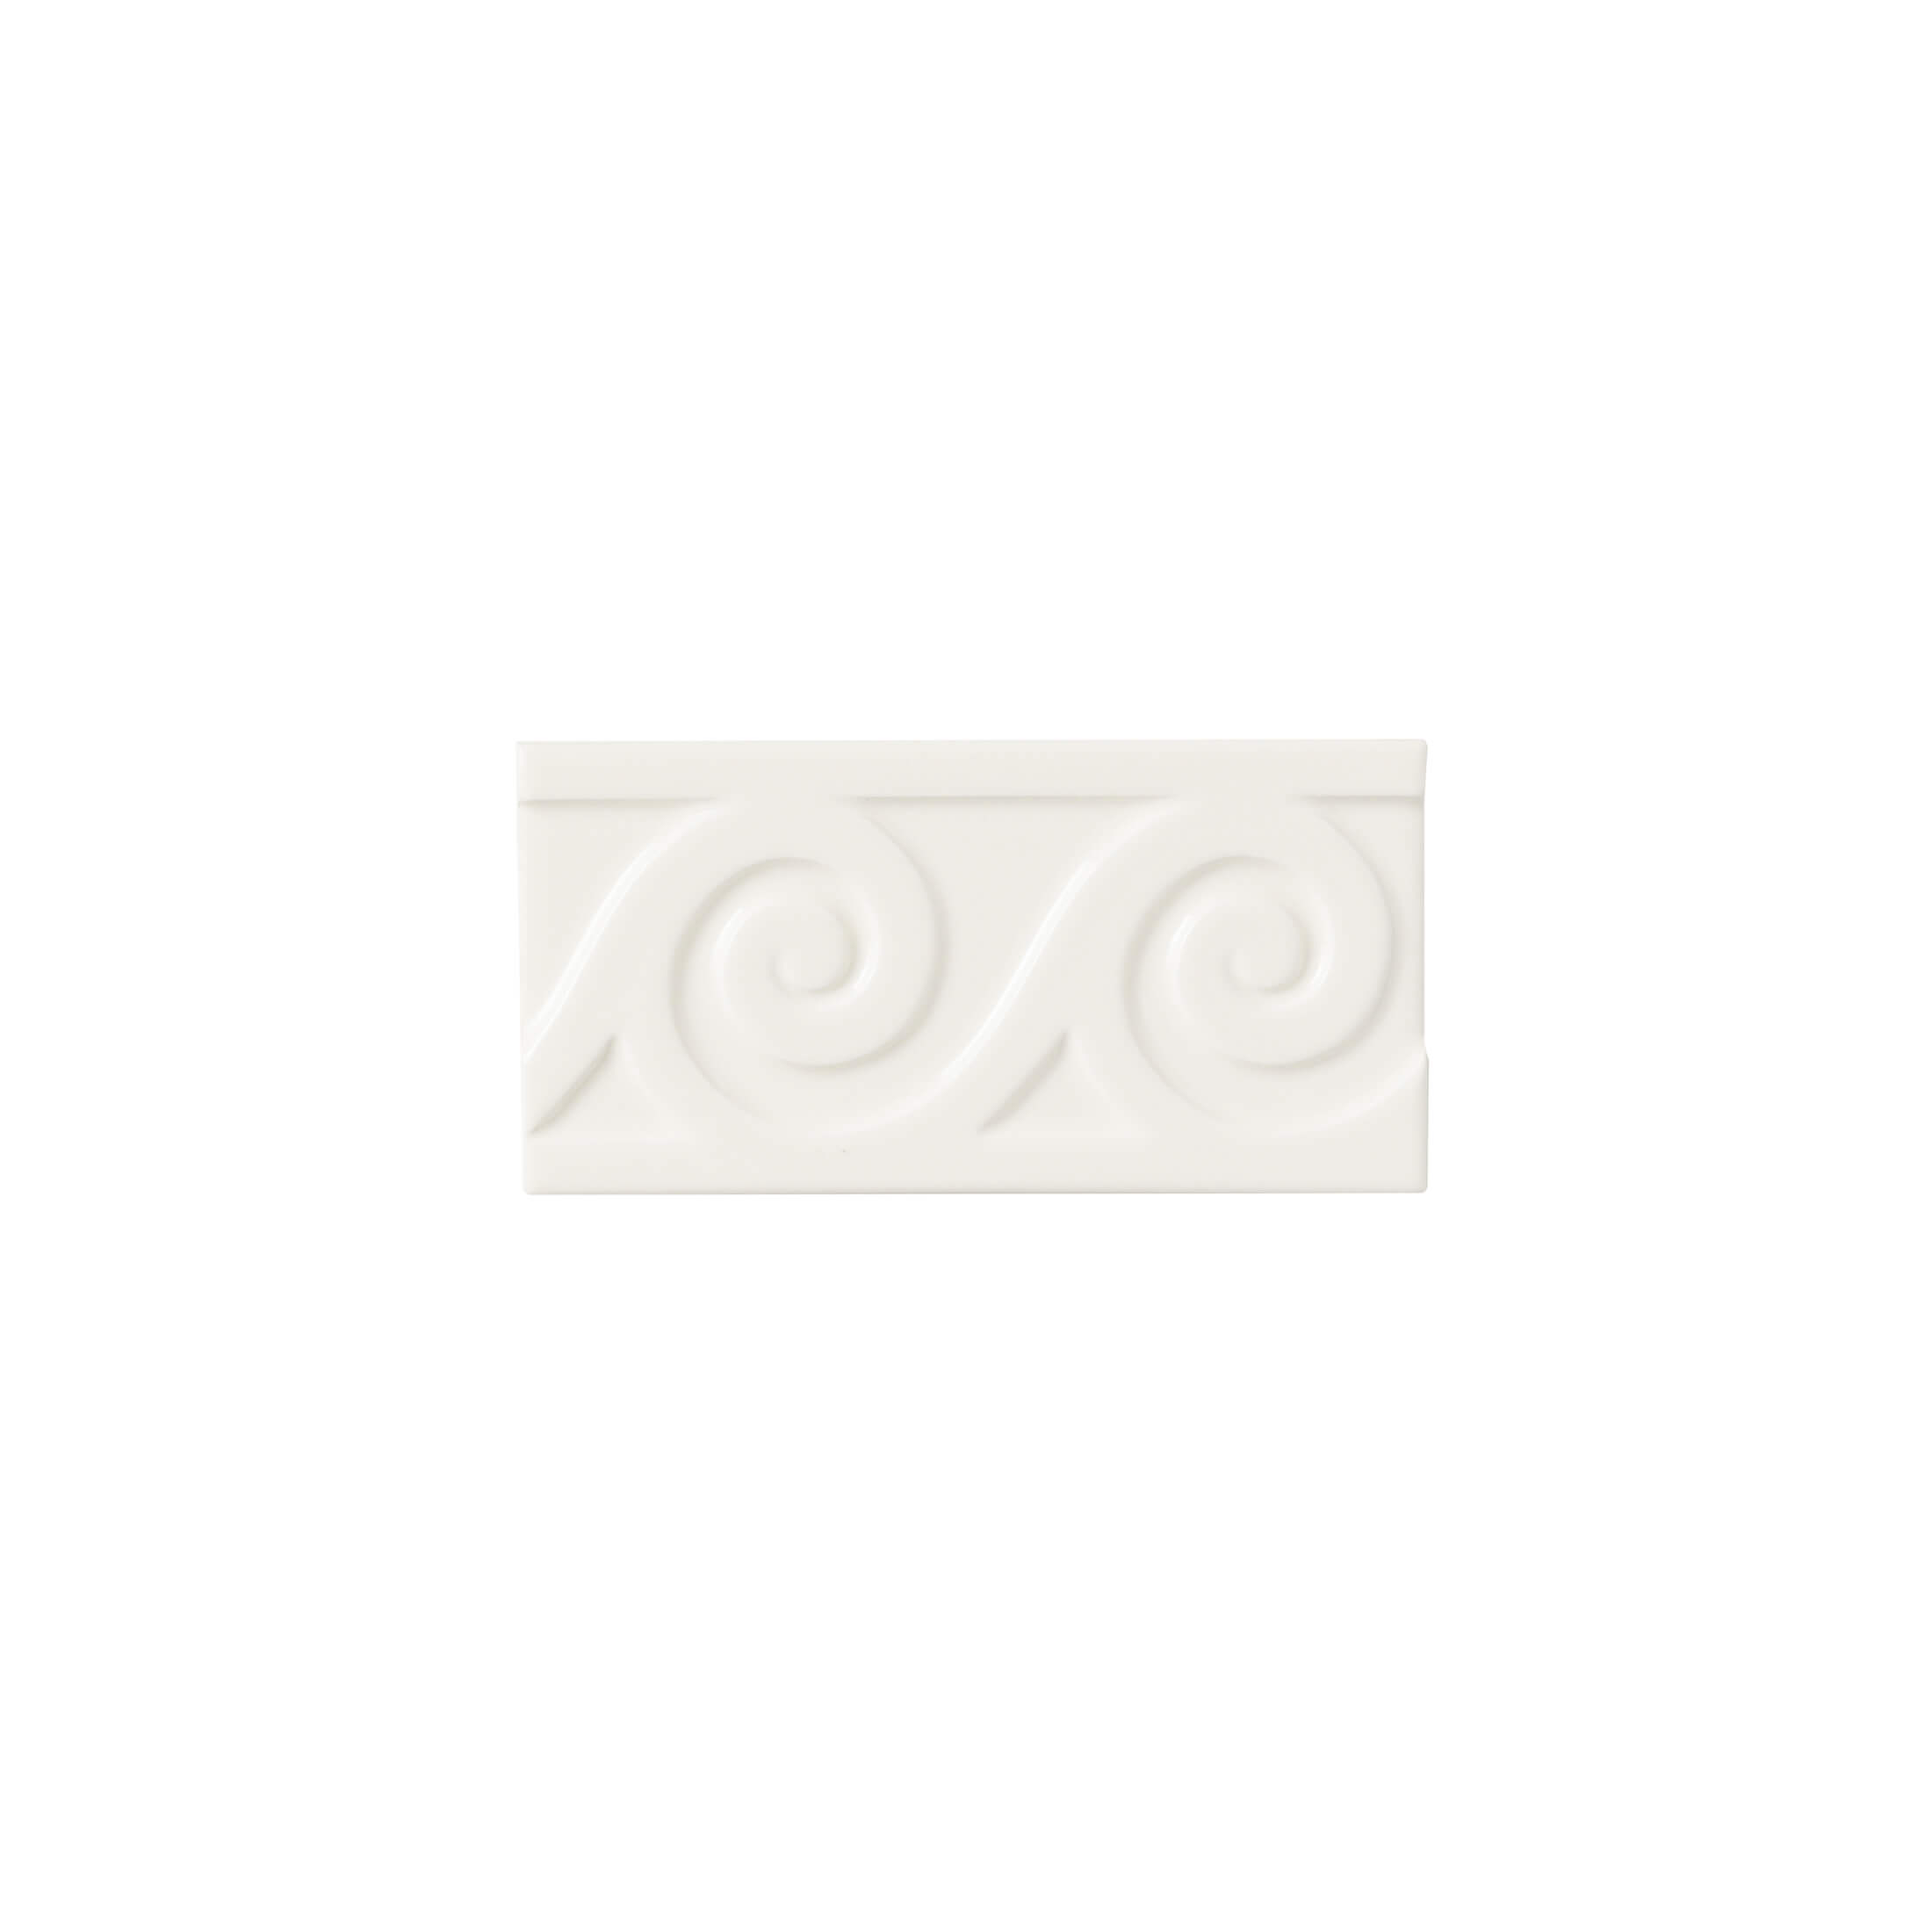 ADNE4119 - RELIEVE MAR - 7.5 cm X 15 cm